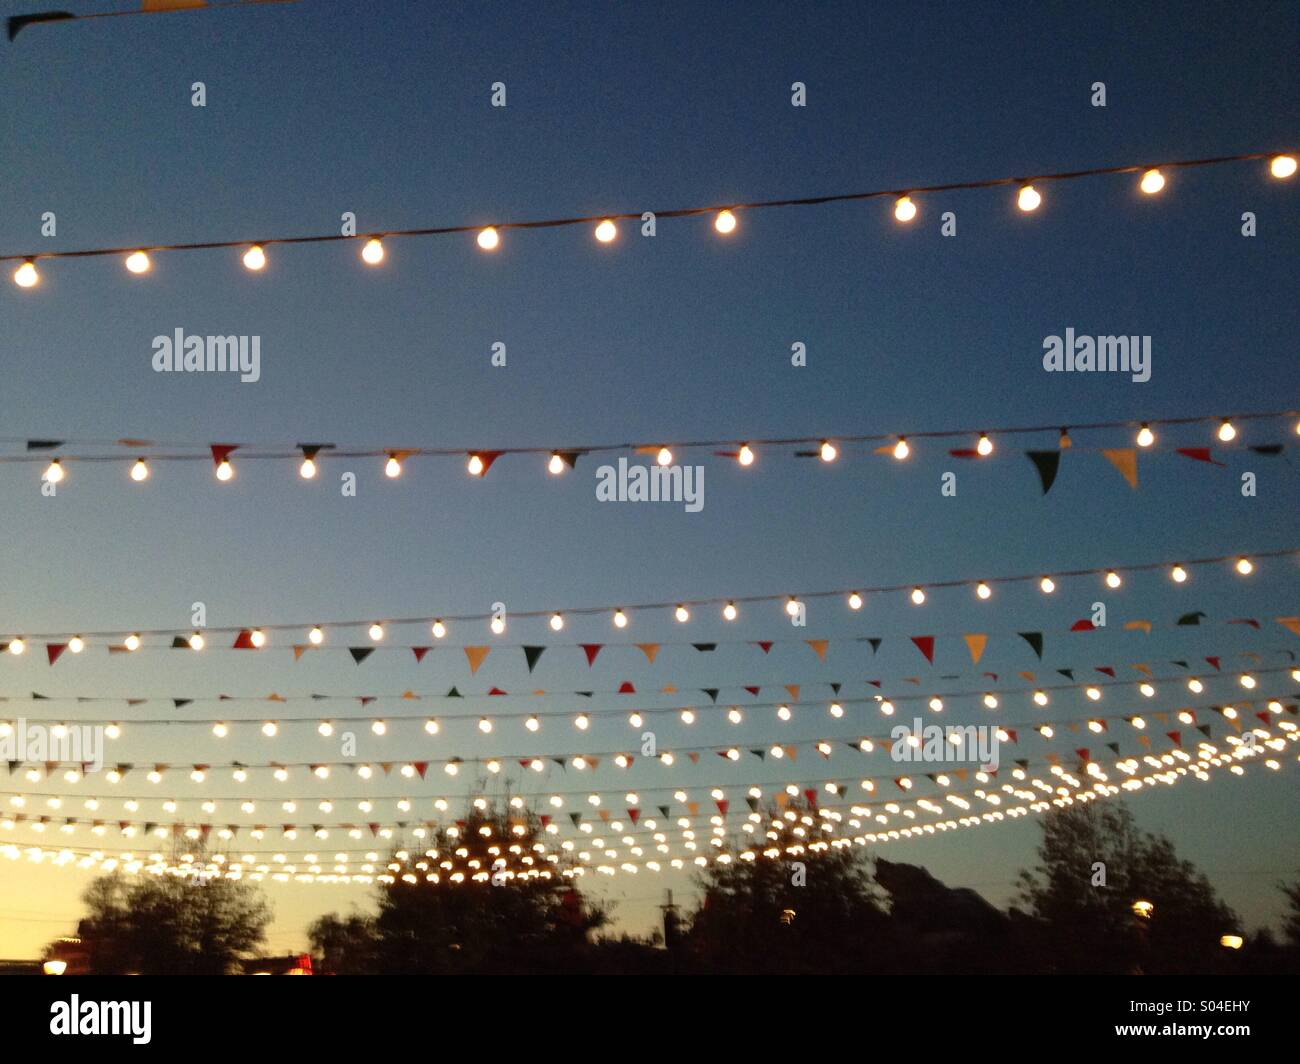 String Lights At Night : Night time strings of party lights Stock Photo, Royalty Free Image: 309885911 - Alamy